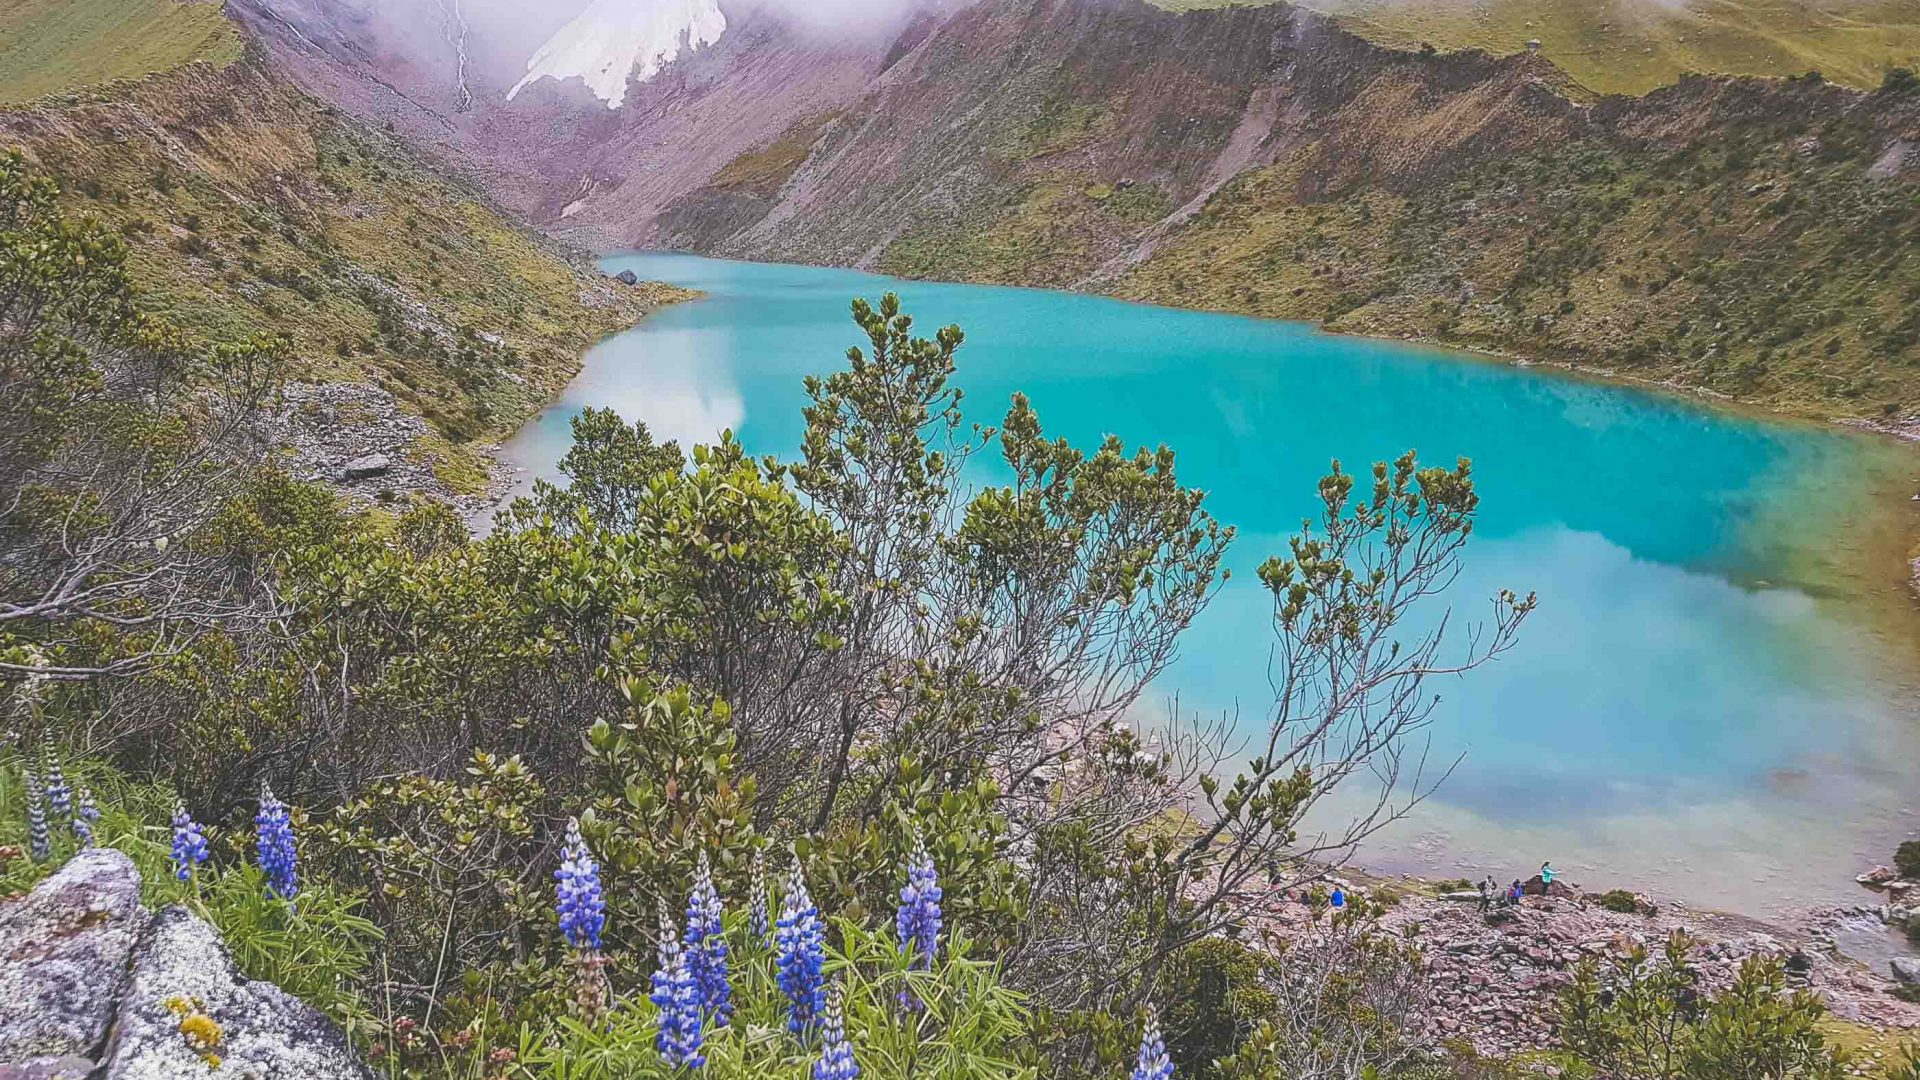 The stunning turquoise Lake Humantay framed by purple lupin flowers greets hikers on the Salkantay hike in Peru.